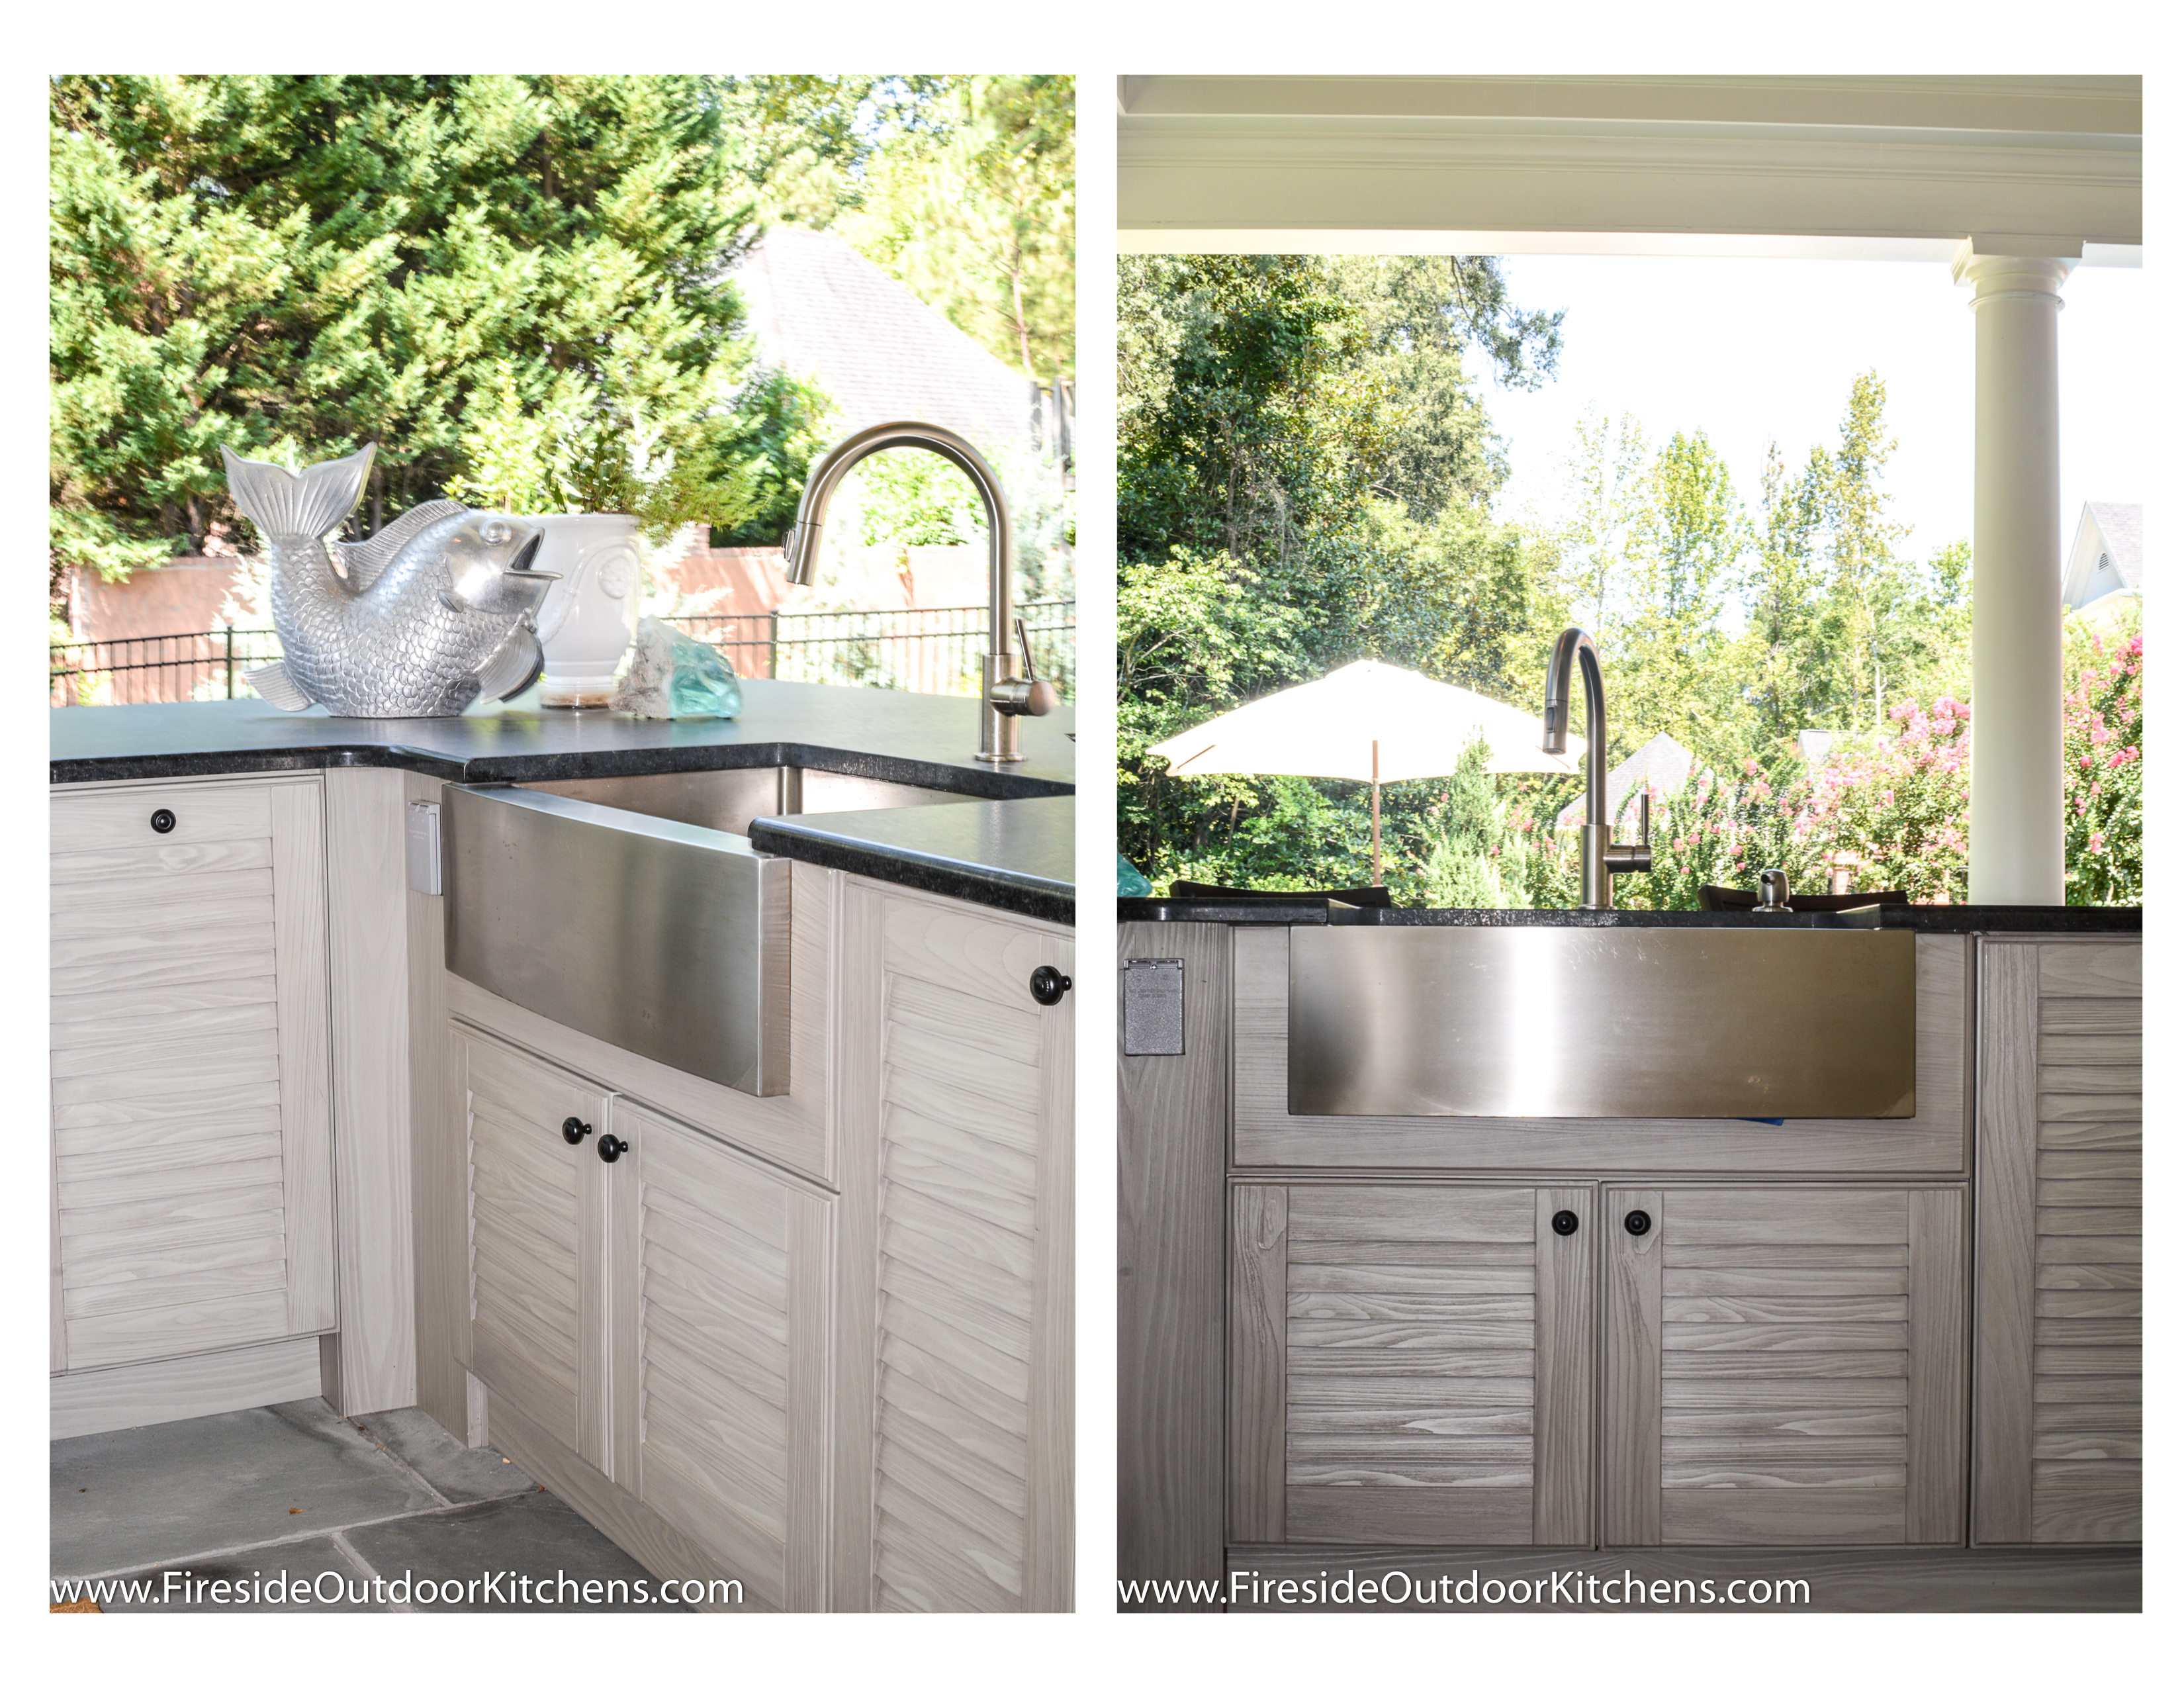 Fireside outdoor kitchen spotlight the gathering spot for Outdoor kitchen with sink and fridge